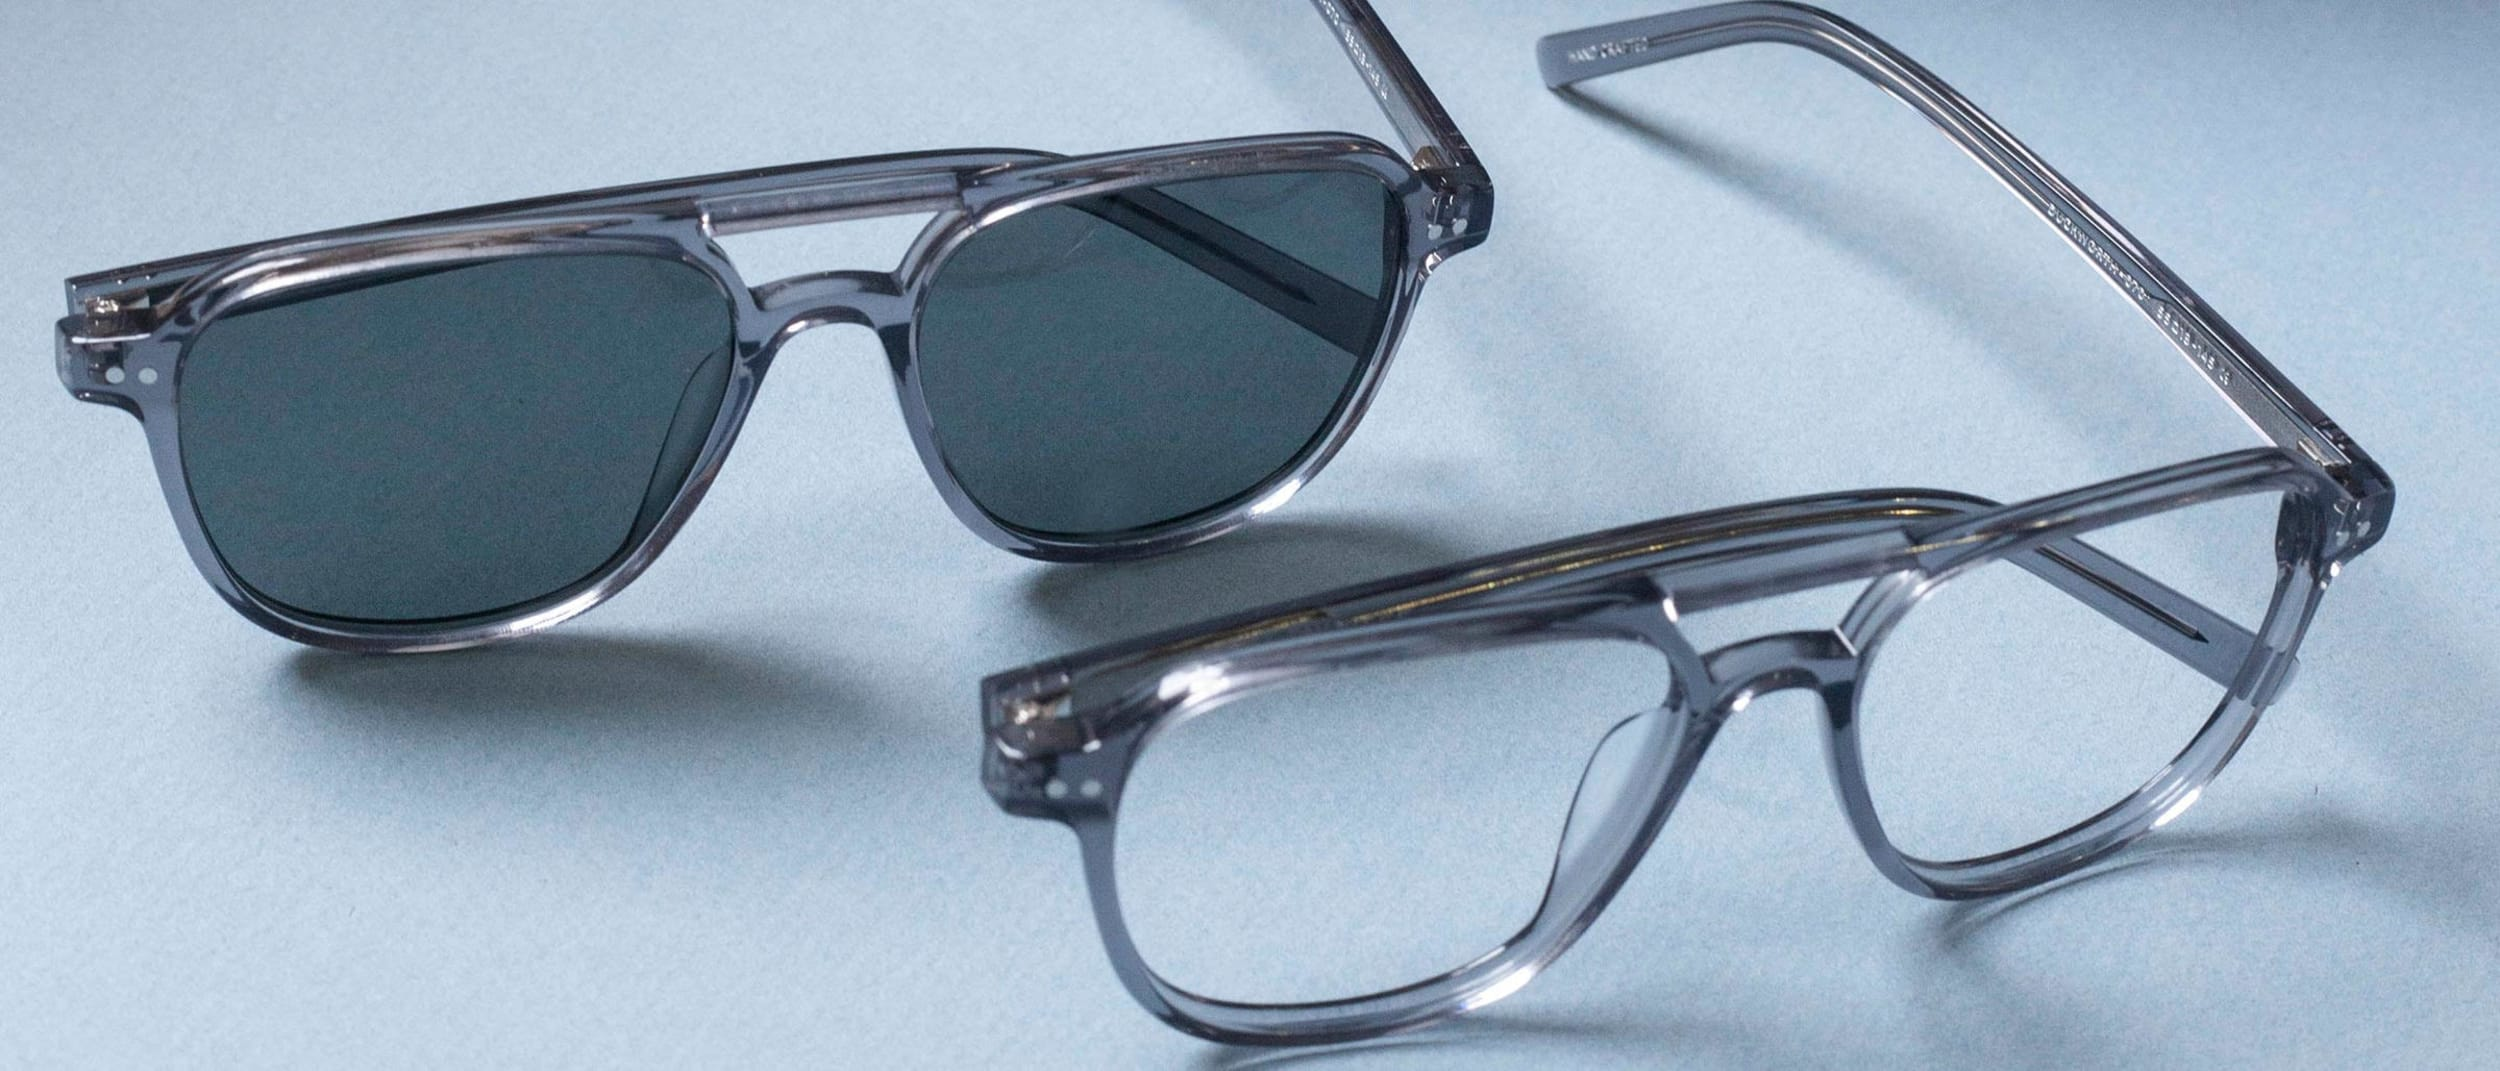 Oscar Wylee: Two pairs from $199